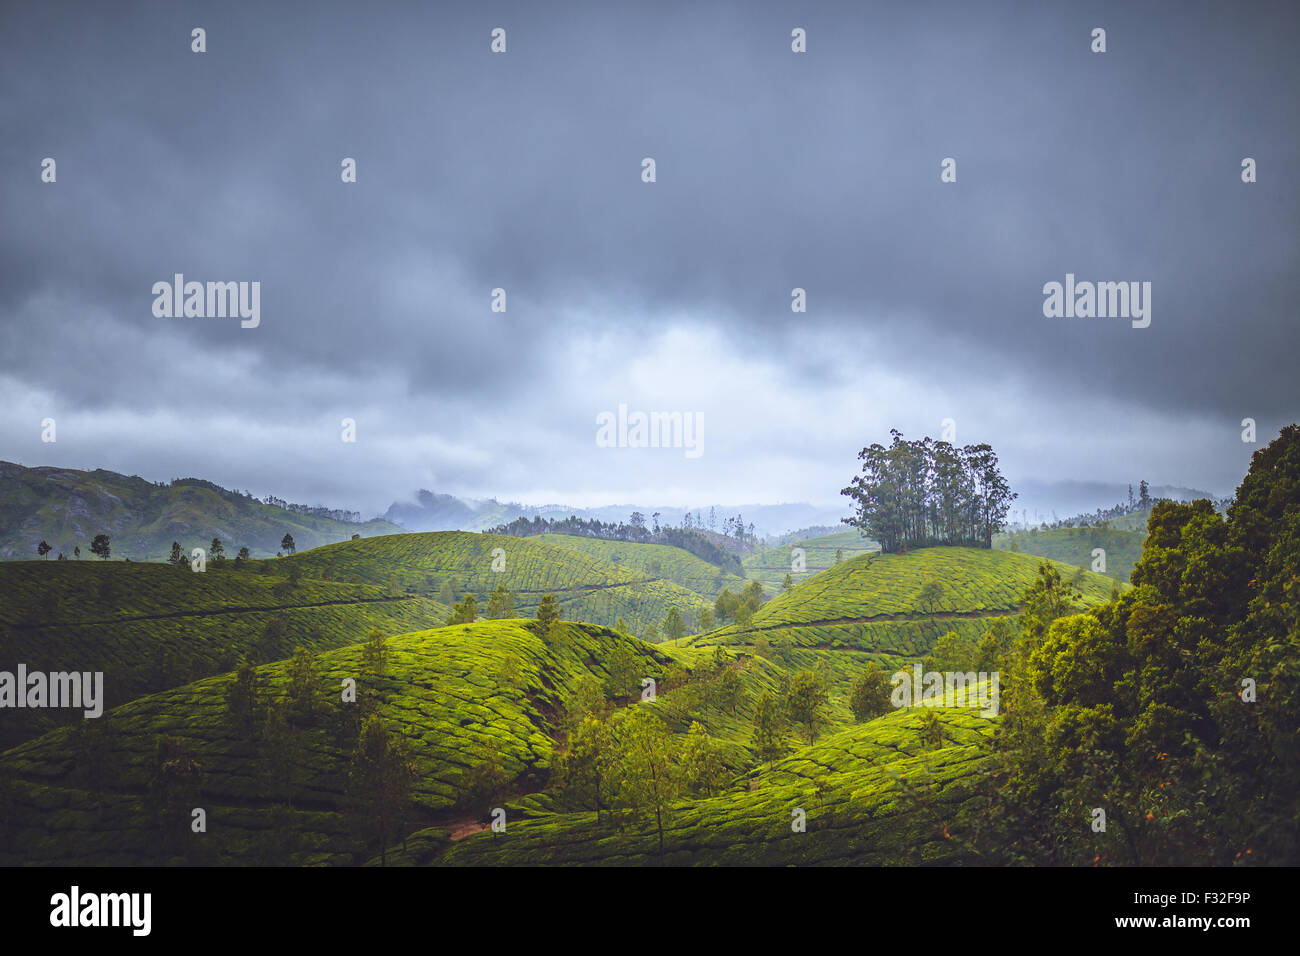 Munnar  is a town and hill station located in the Idukki district of the south western state of Kerala in India. - Stock Image